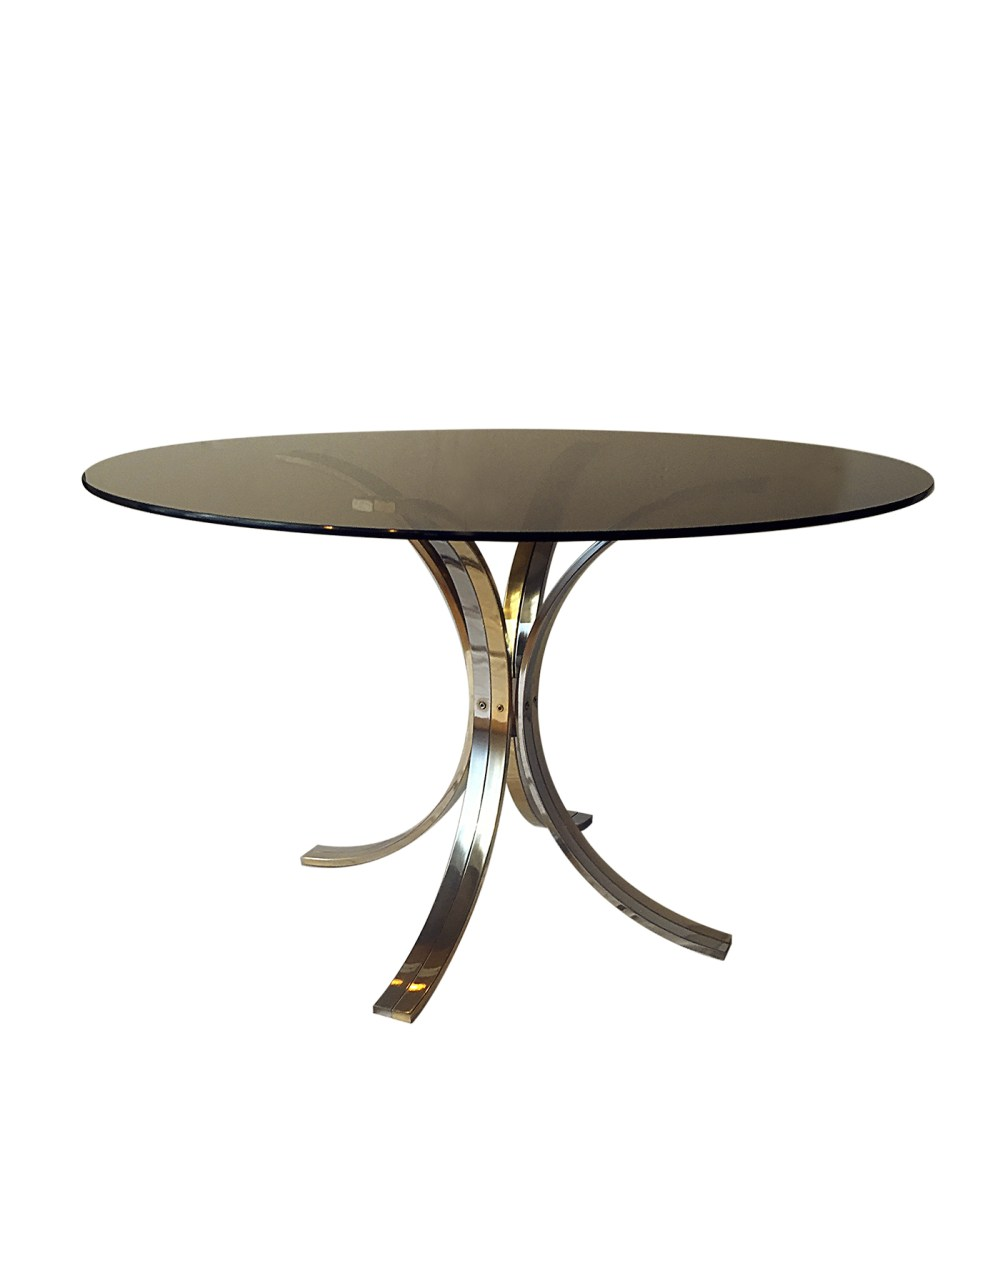 table de salon vintage romeo rega 1970 chrome et laiton